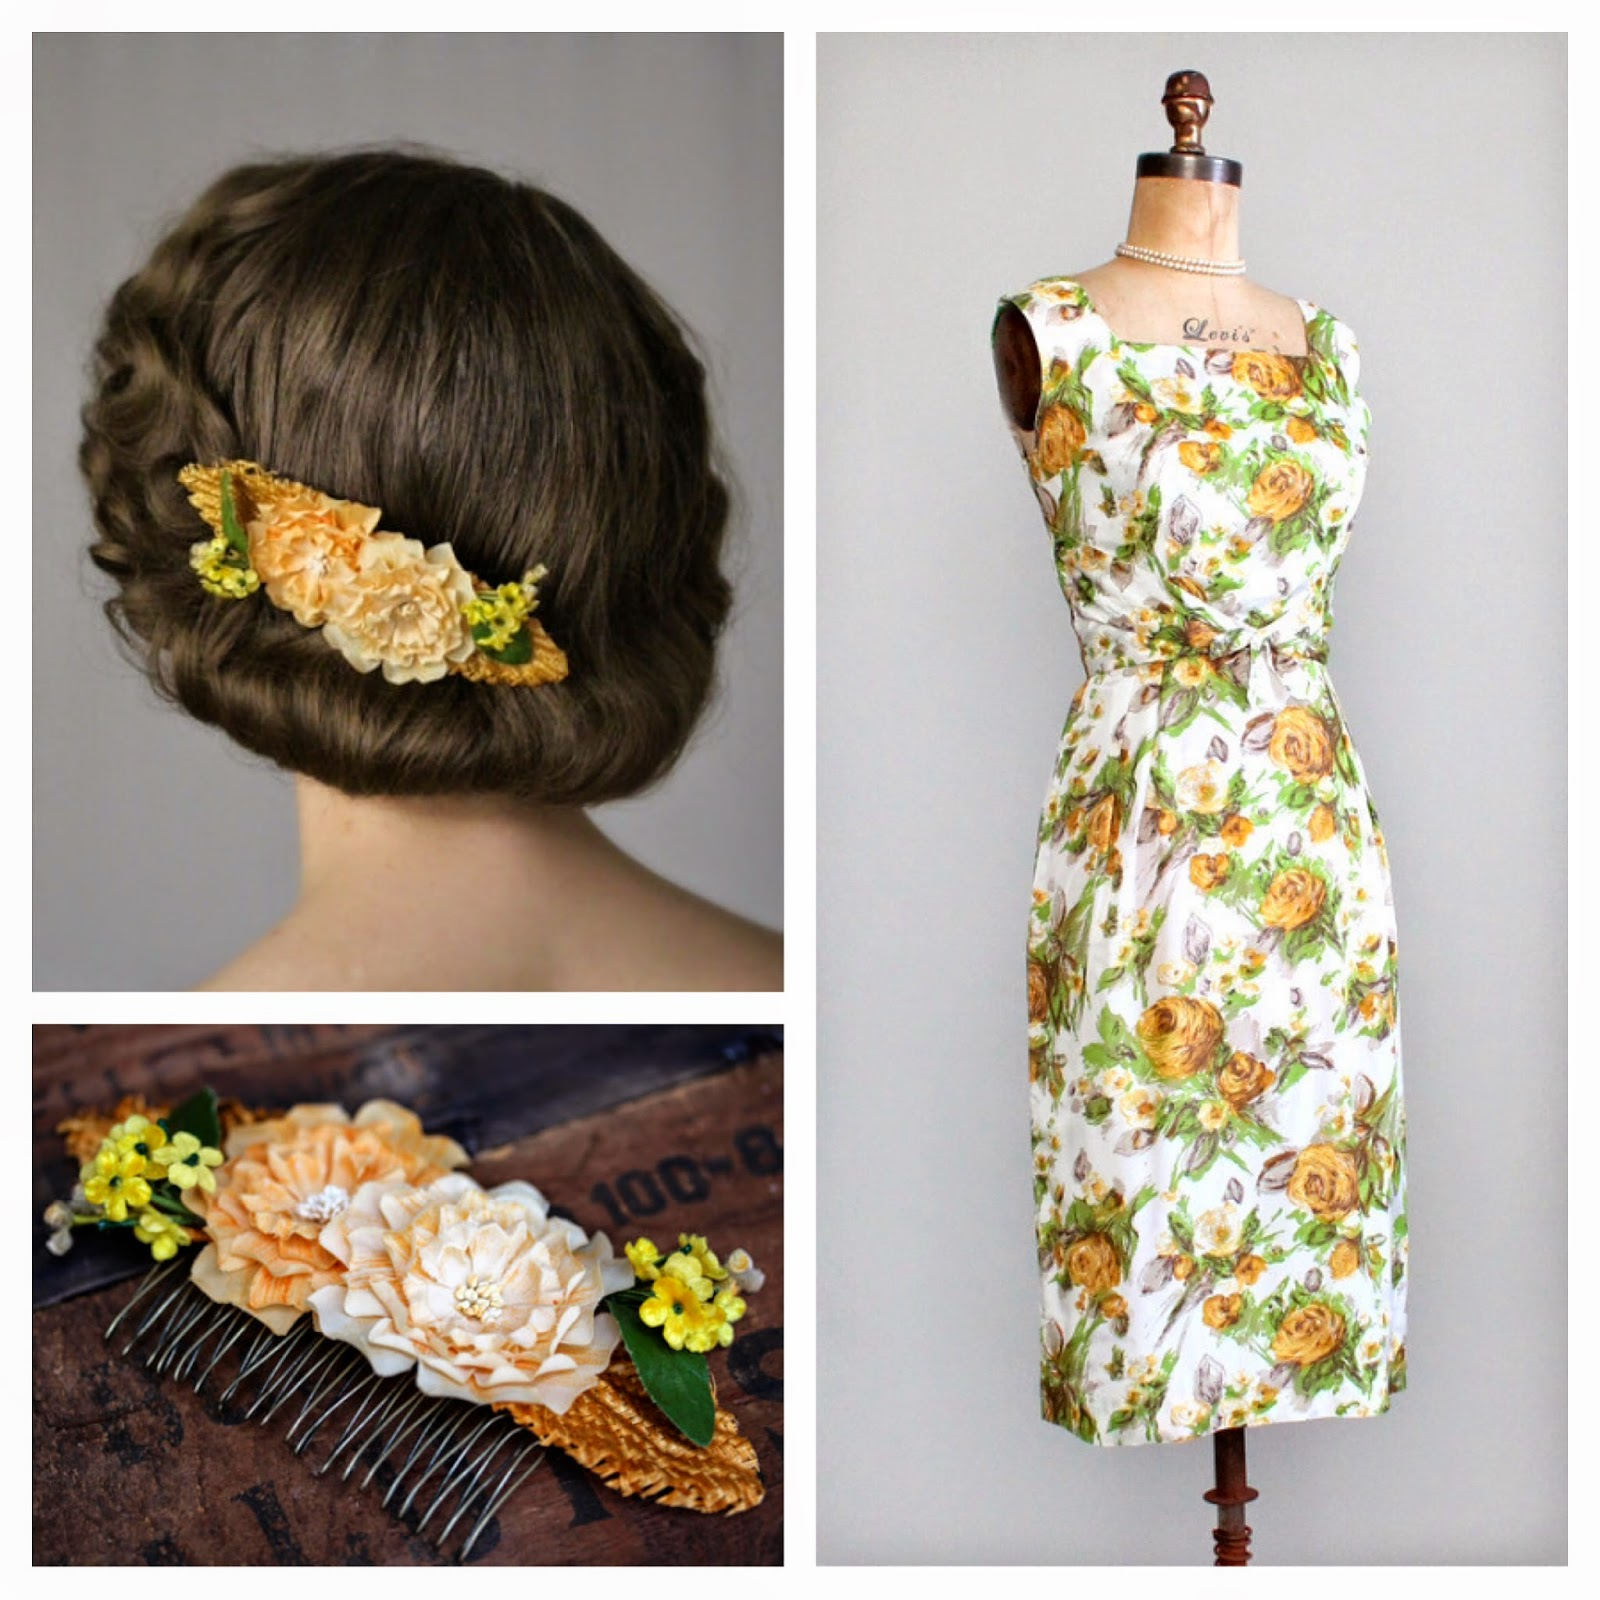 Country Spring #1950s #1960s #fashion #marigold #yellow #green #vintage #dress